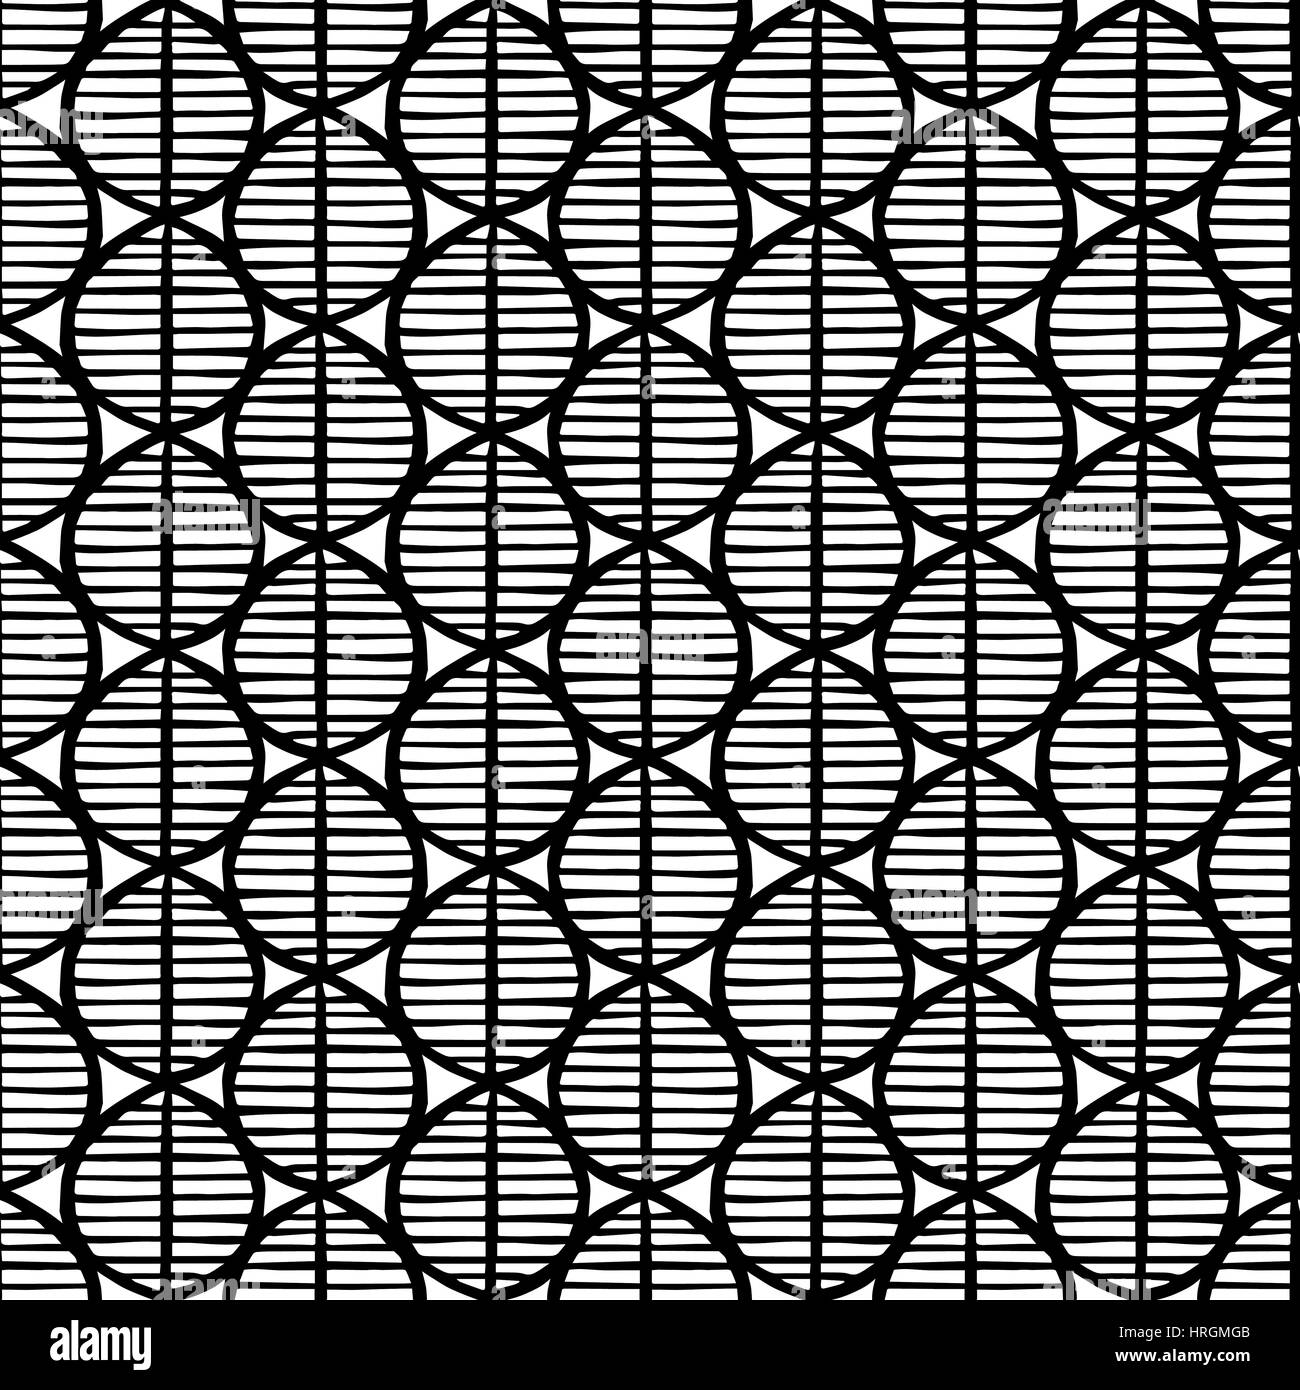 Primitive seamless floral pattern with leaves. Tribal ethnic background, simplistic geometry, black and white. Textile - Stock Image